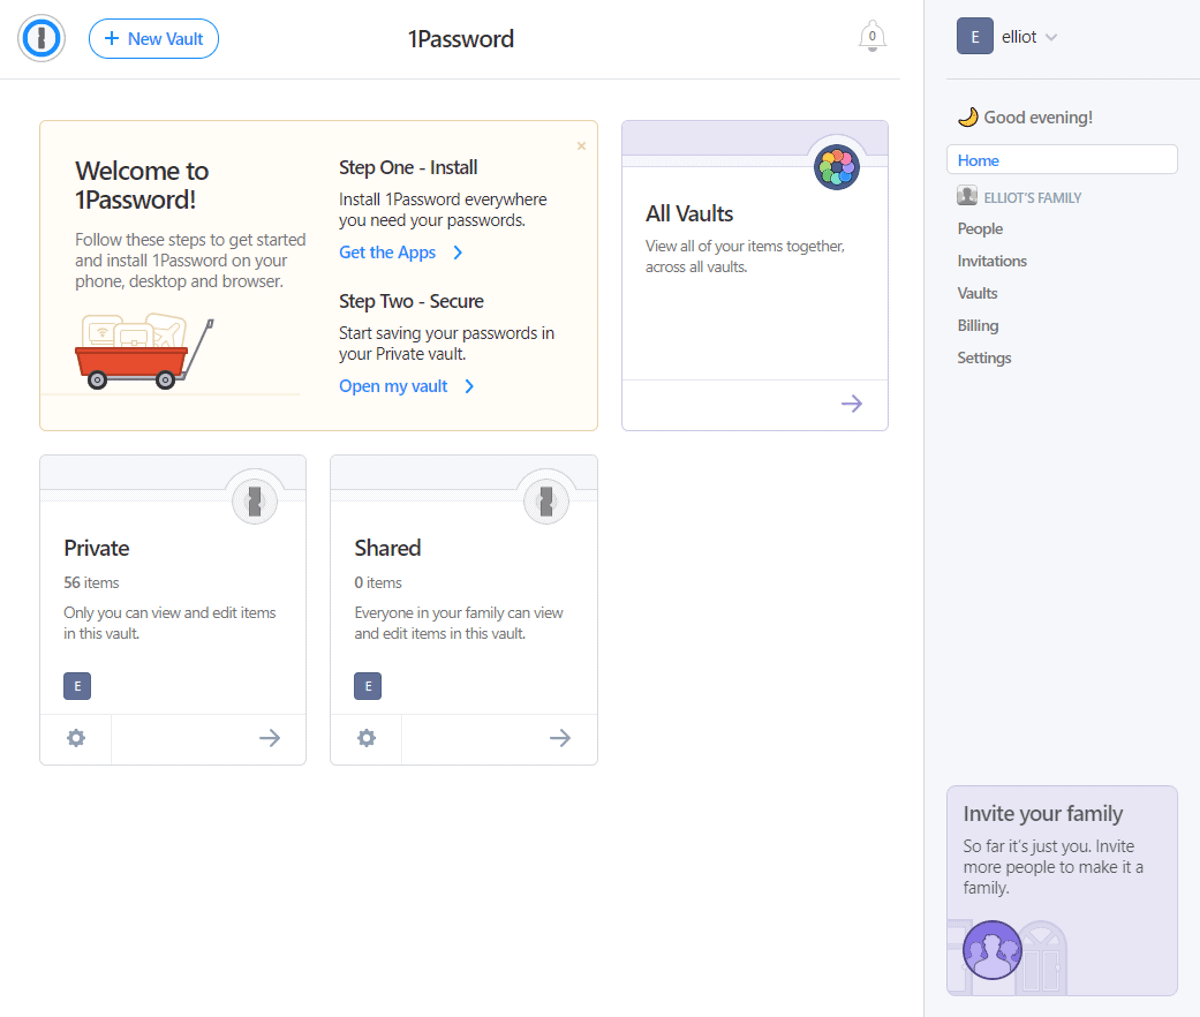 1password navigation pane is on the right